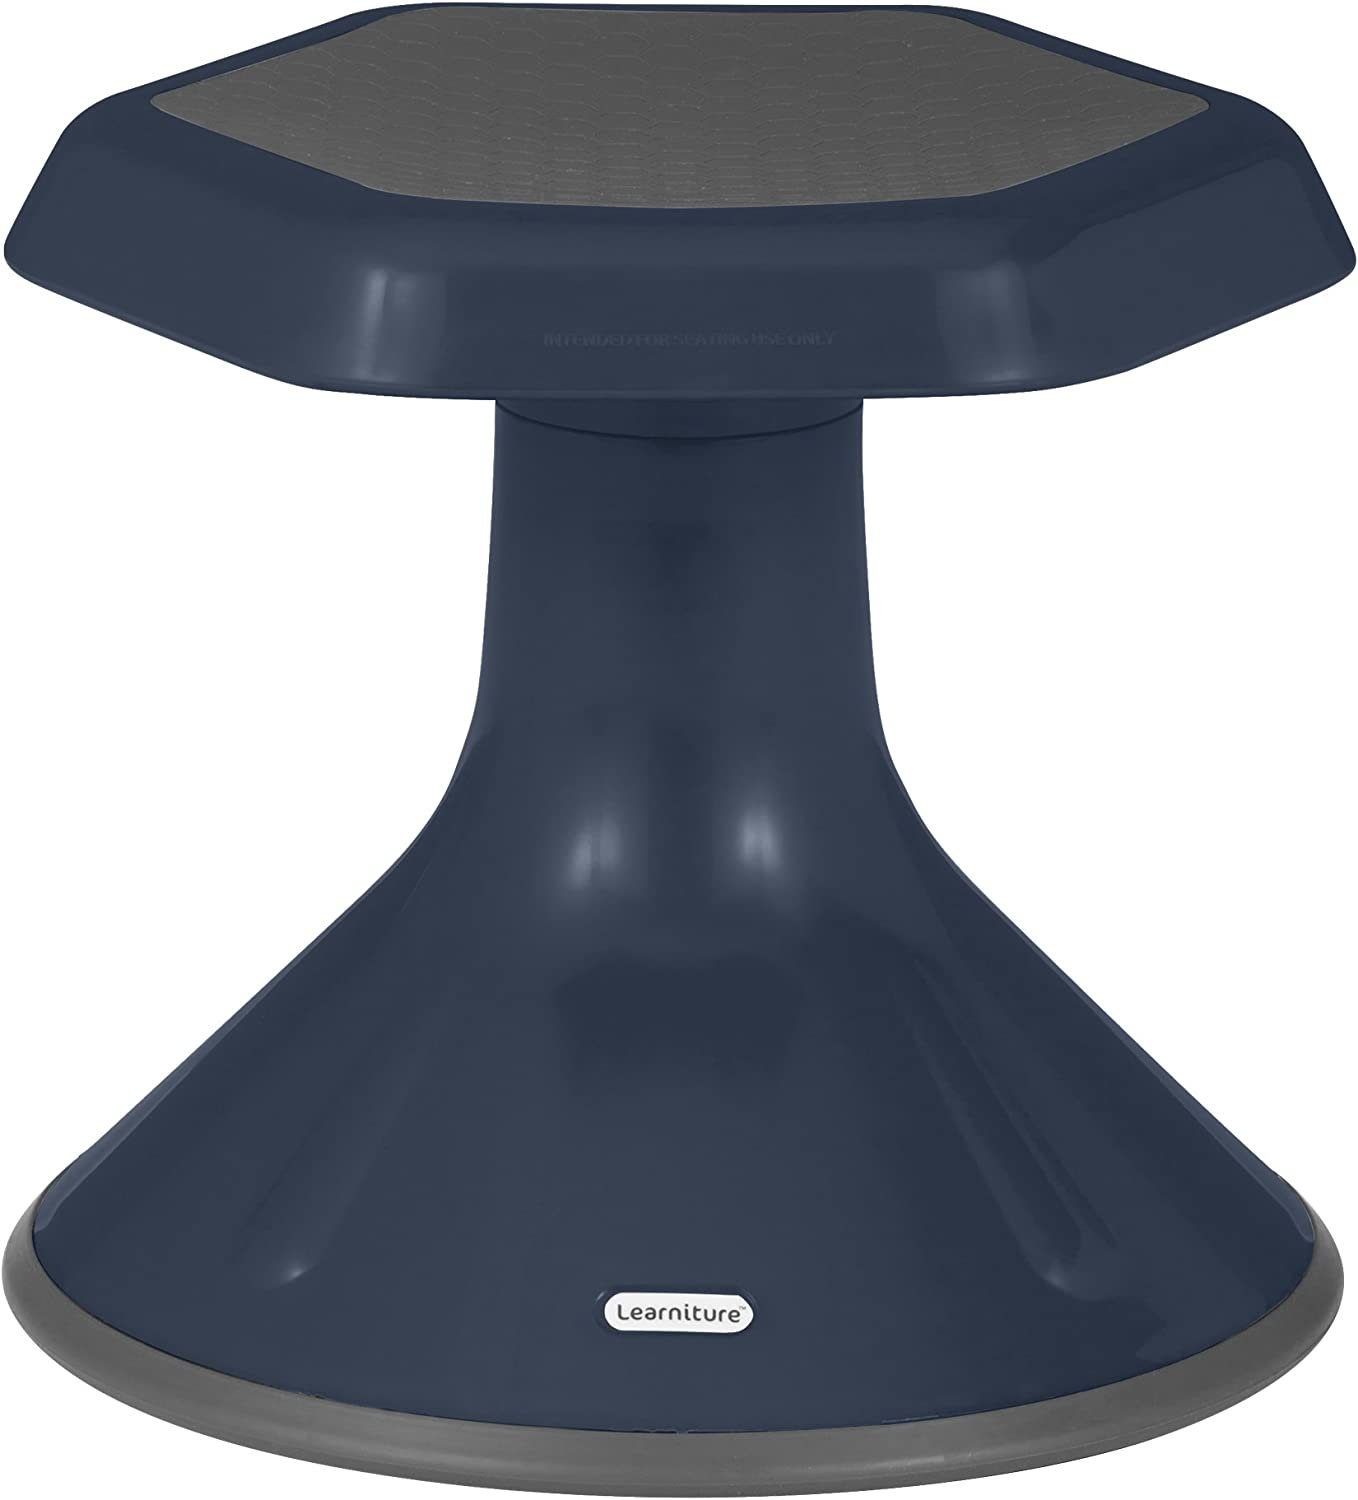 Learniture Active Learning Chair  Stool, 12  H, Navy, LNT-3046-12NV